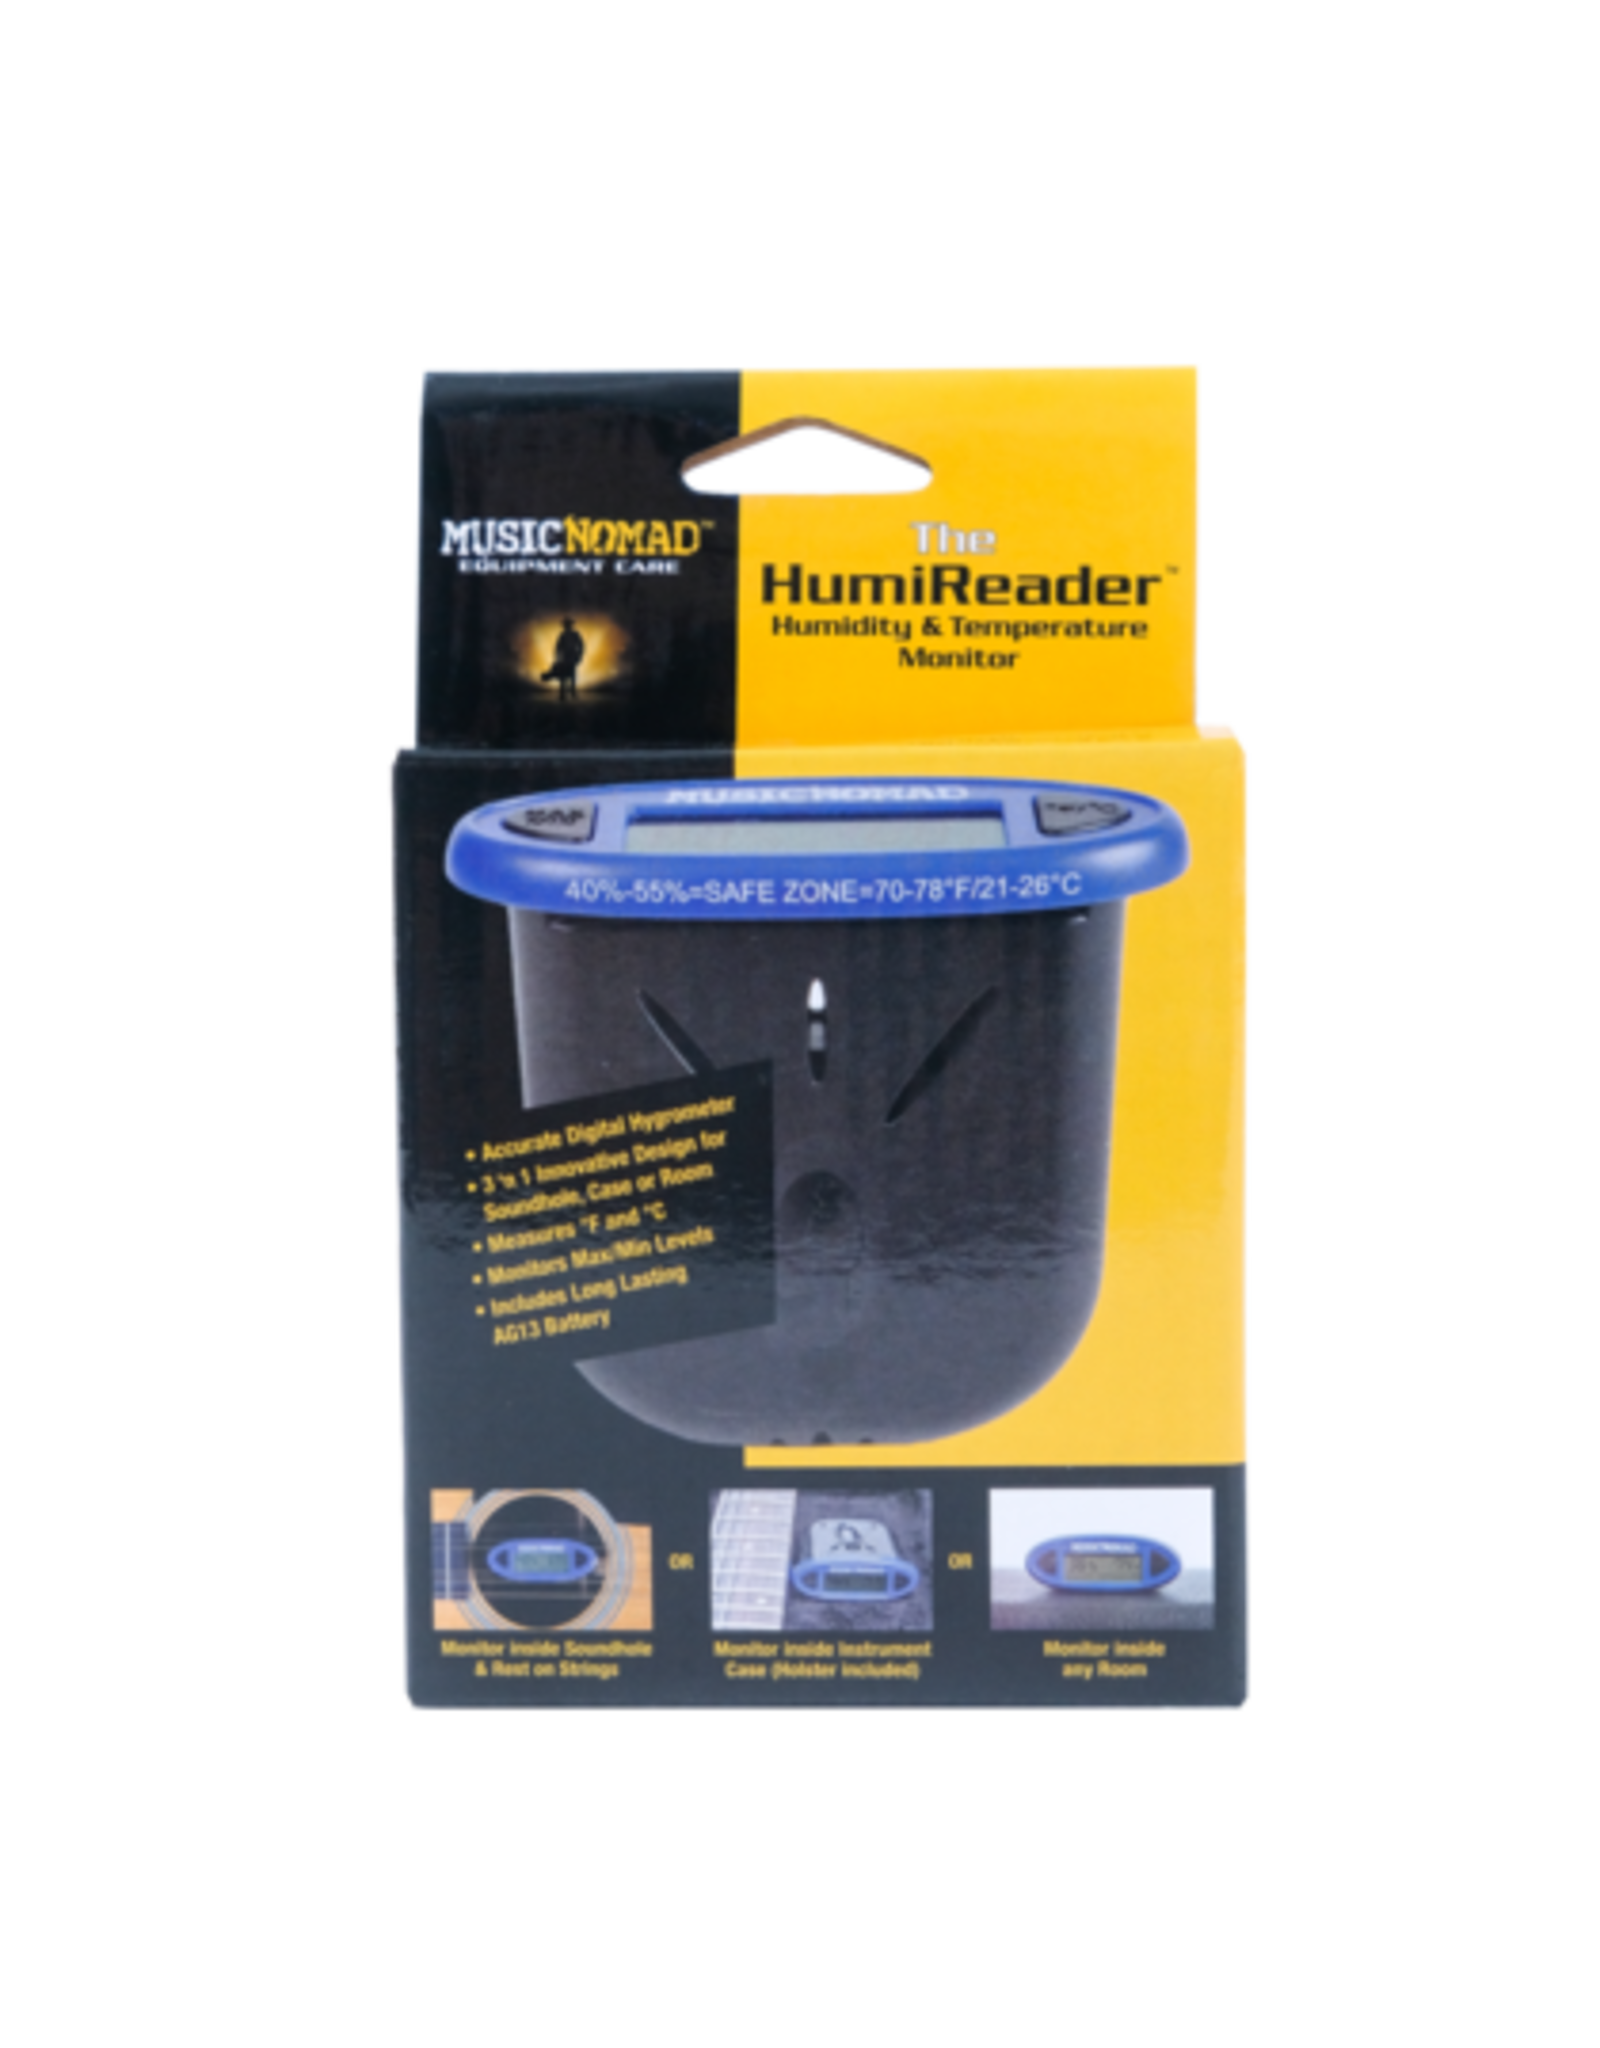 Music Nomad The HumiReader - Humidity & Temperature Monitor